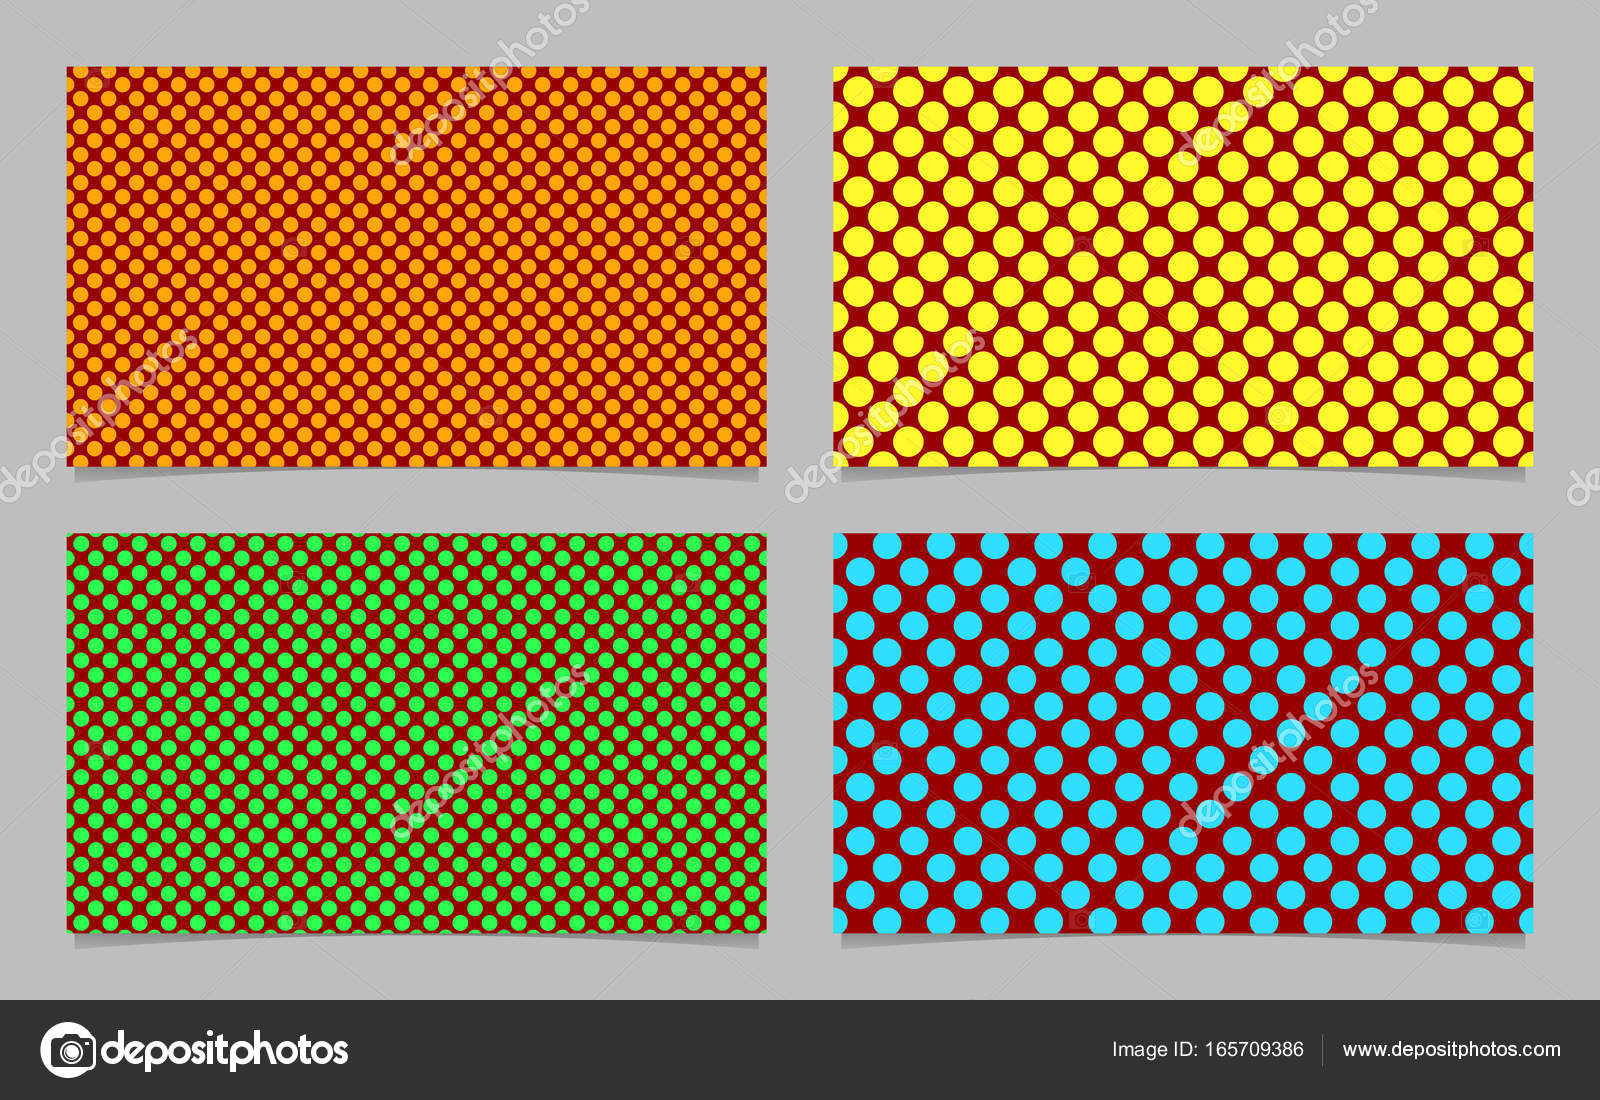 Modern abstract polka dot business card background set - vector ...